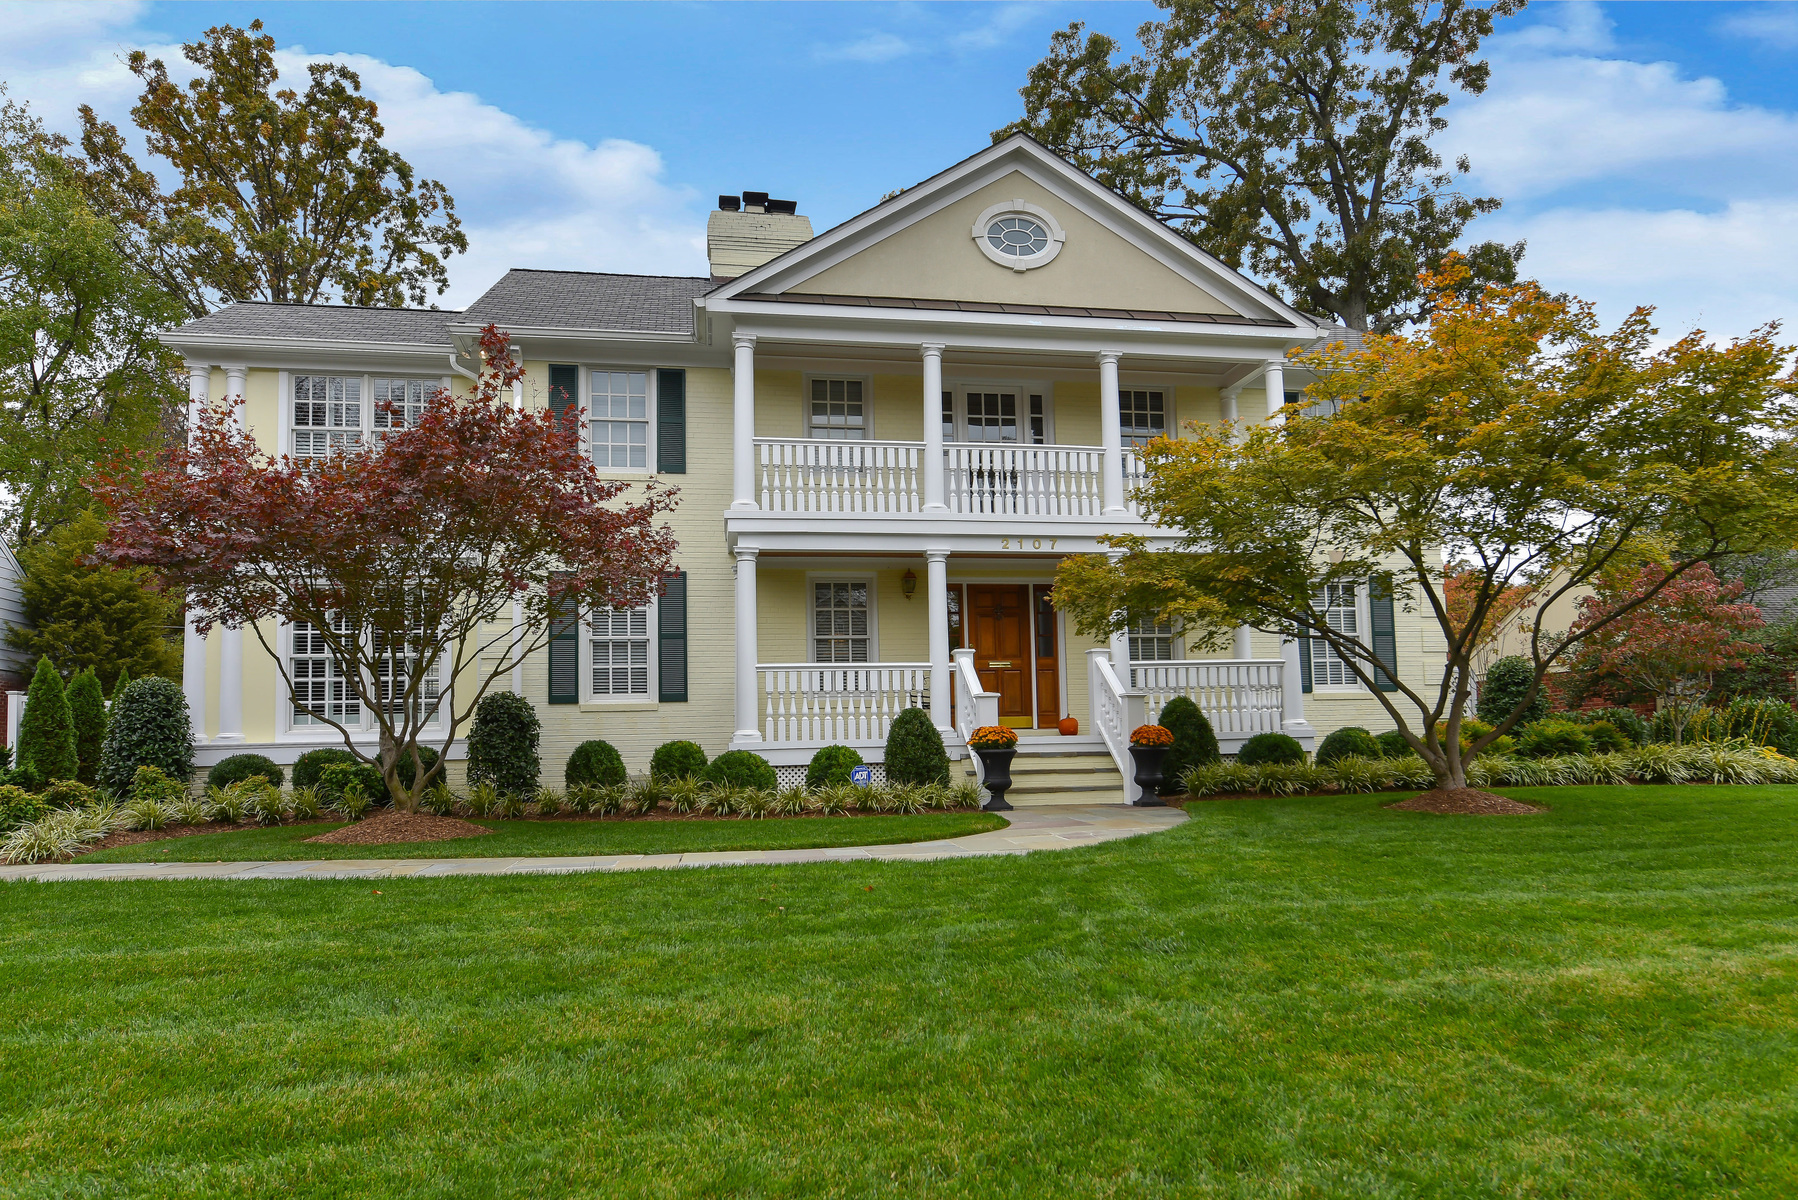 Single Family Home for Rent at Belle Haven 2107 Windsor Rd Alexandria, Virginia 22307 United States